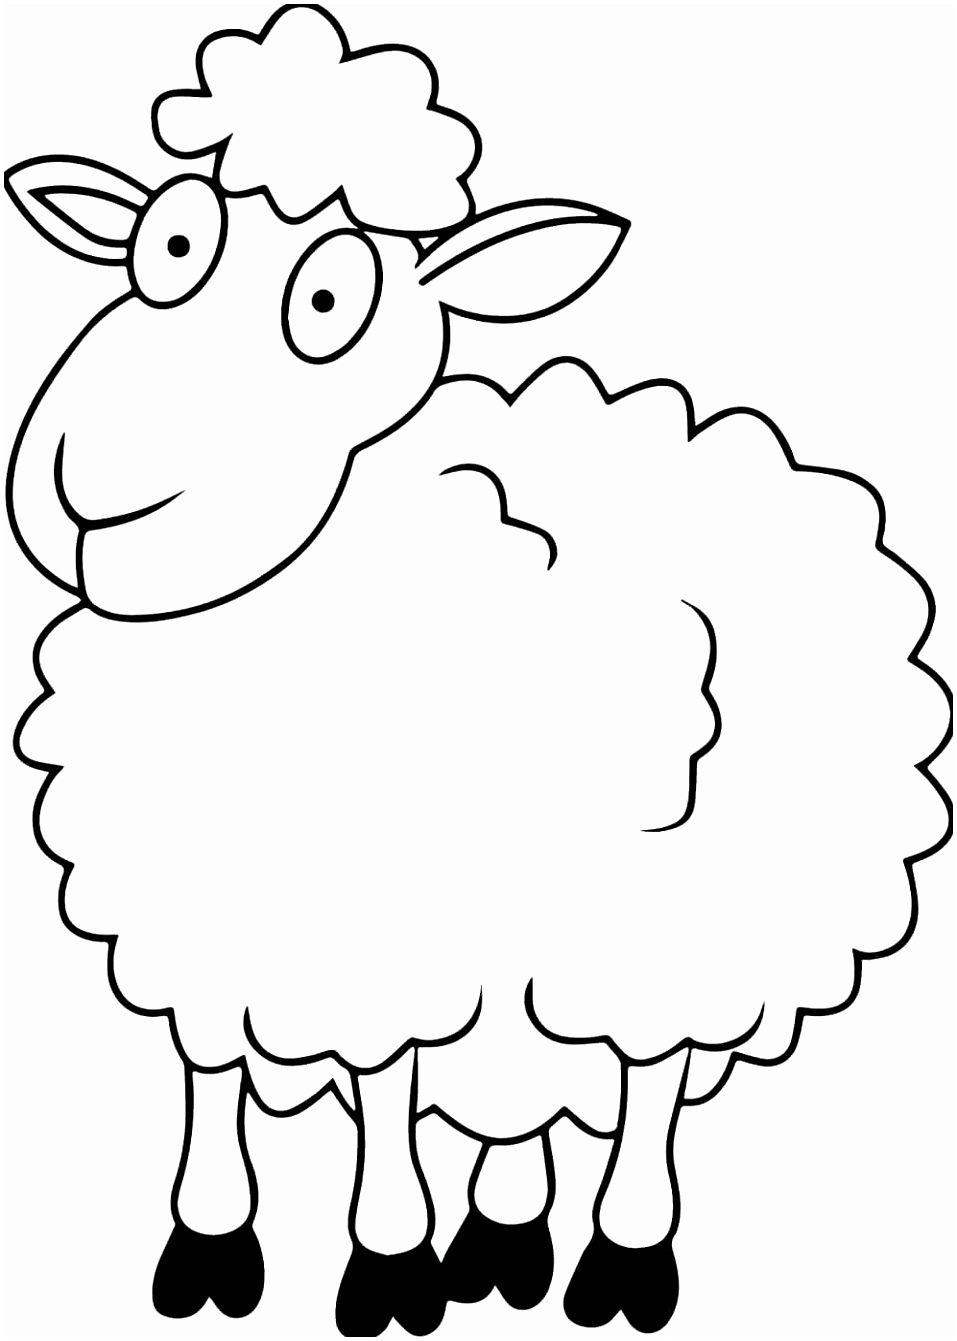 Simple Sheep Drawing at GetDrawings.com | Free for personal use ...